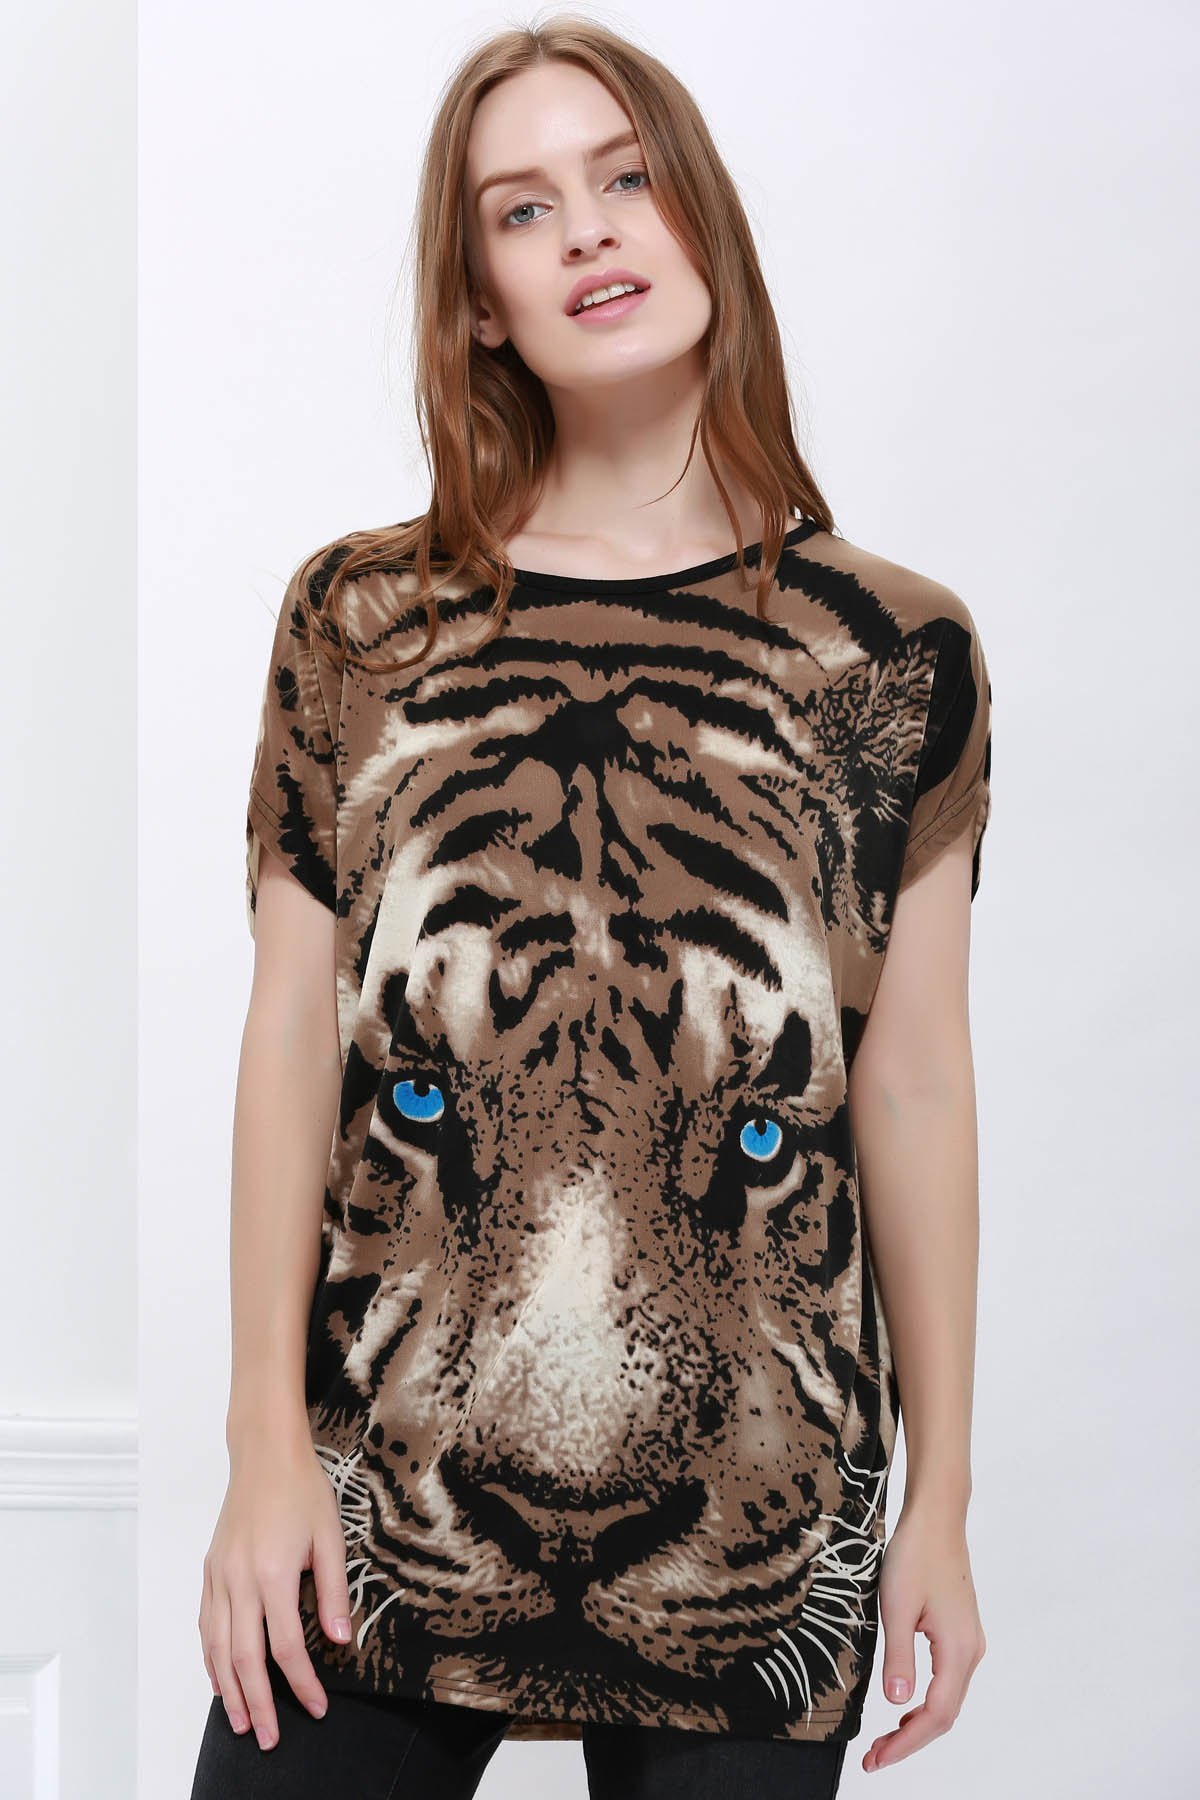 Stylish Style Tiger Print Women's T-Shirt - COLORMIX ONE SIZE